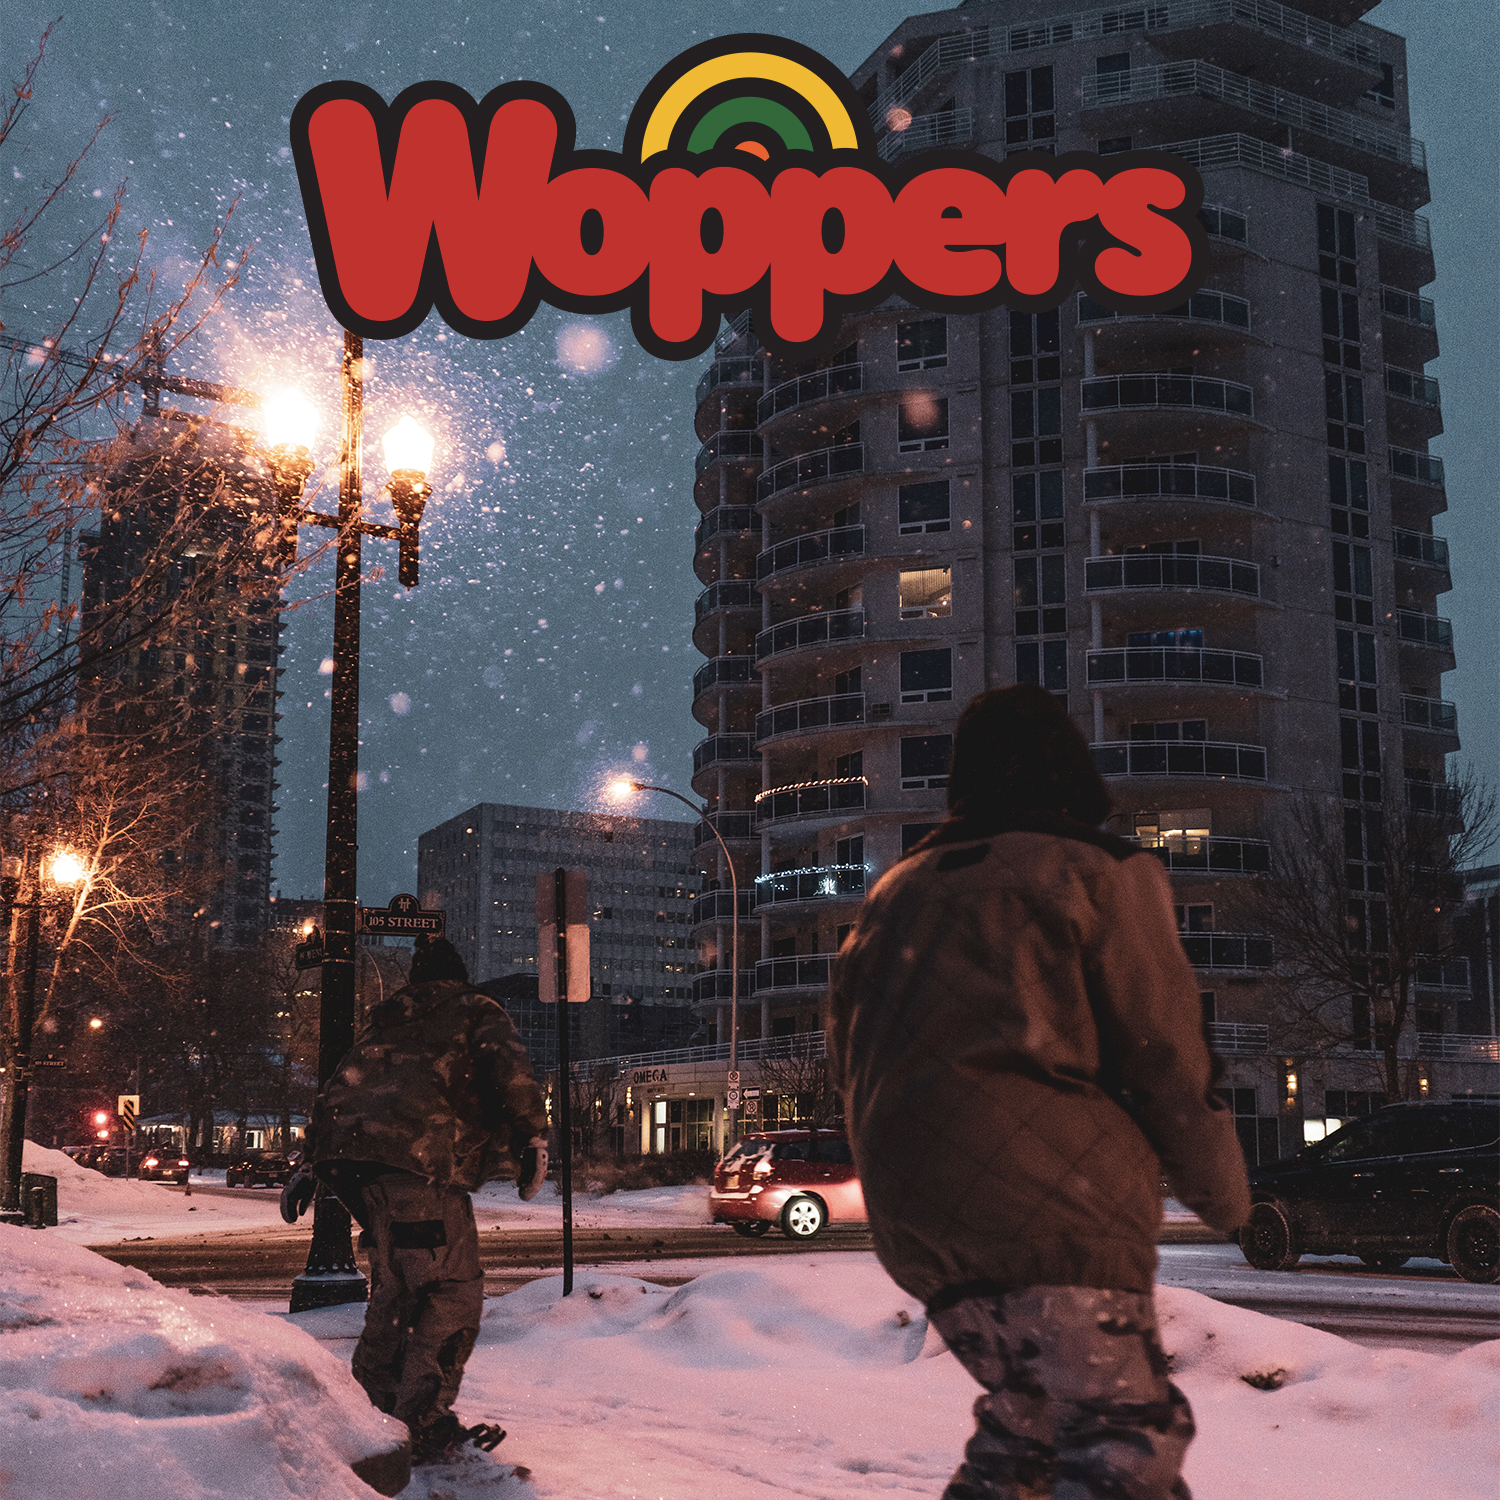 Woppers movie out now